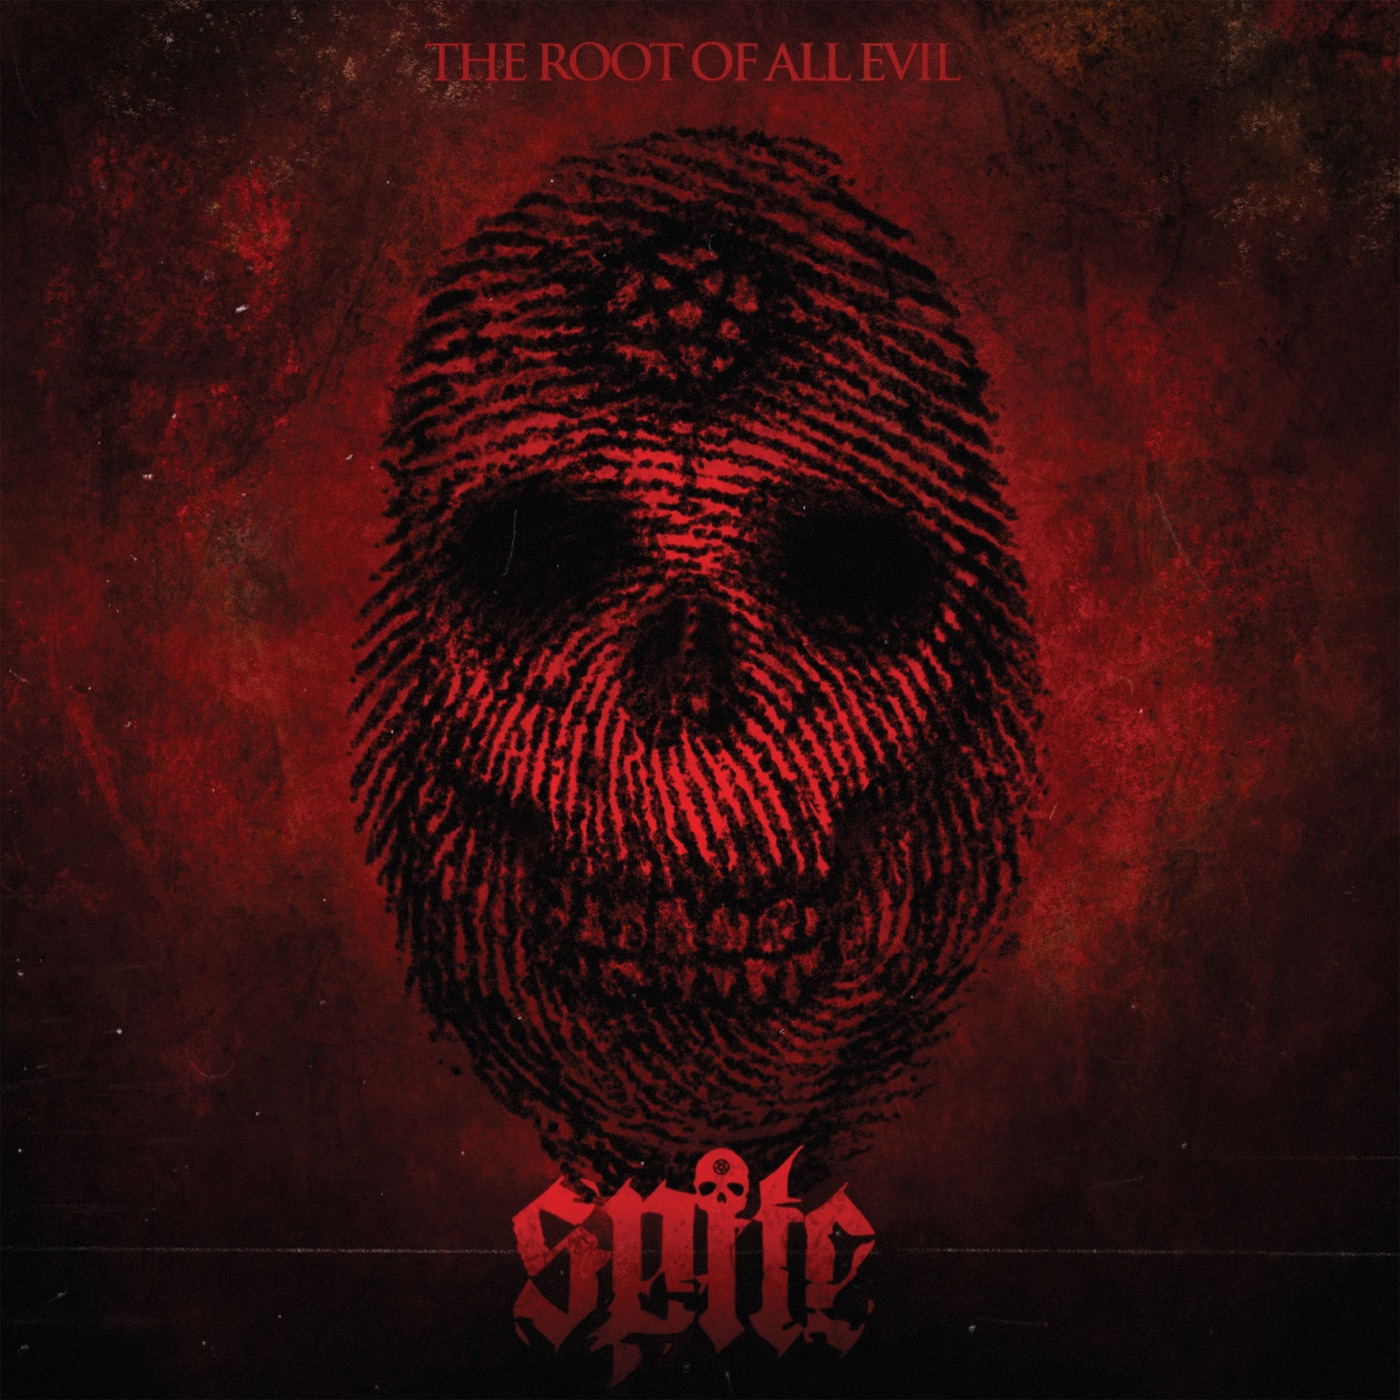 Spite - The Root of All Evil (2019)